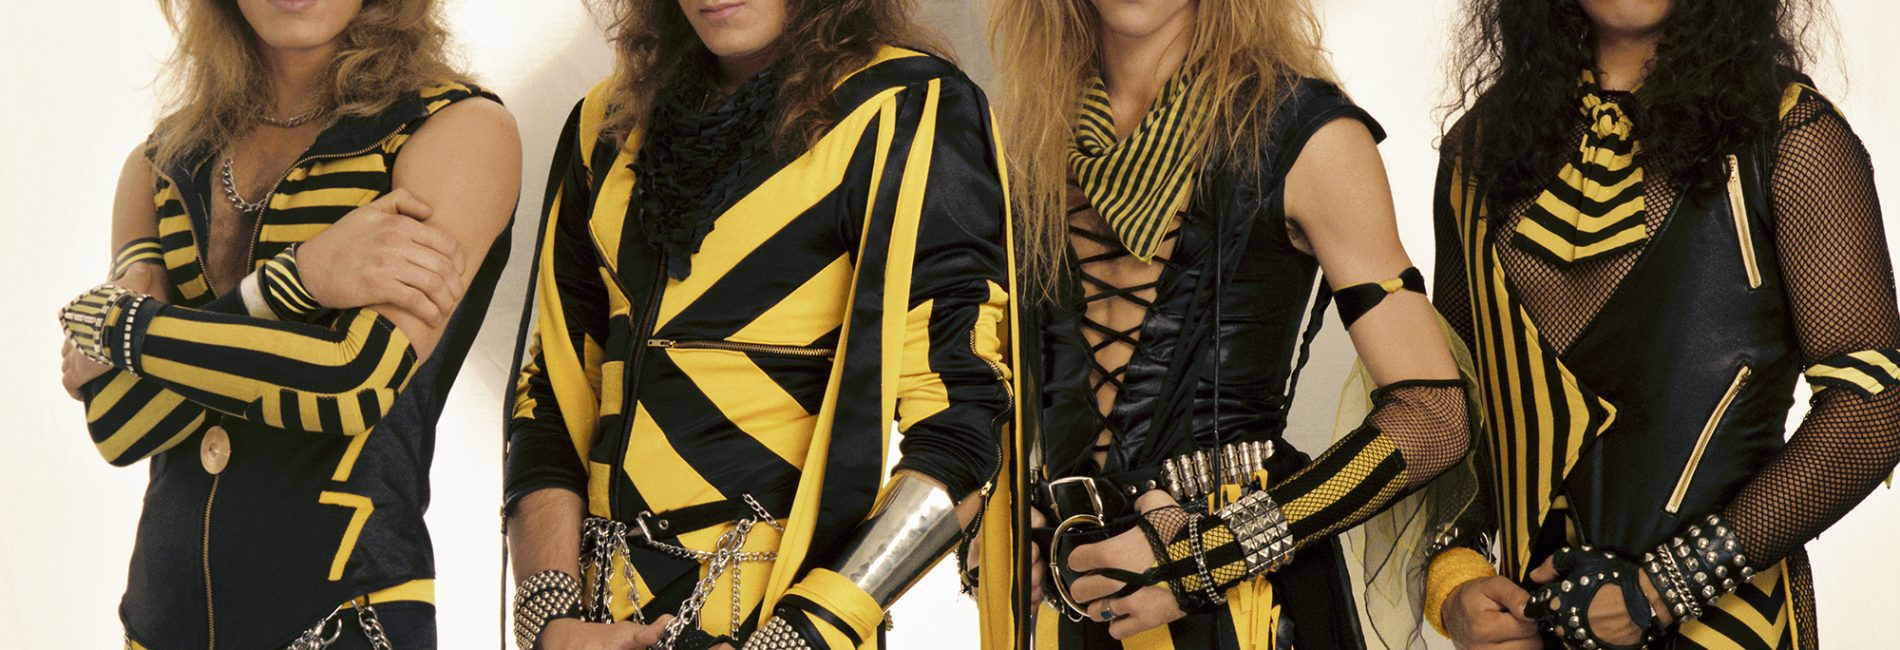 The Yellow and Black Attack